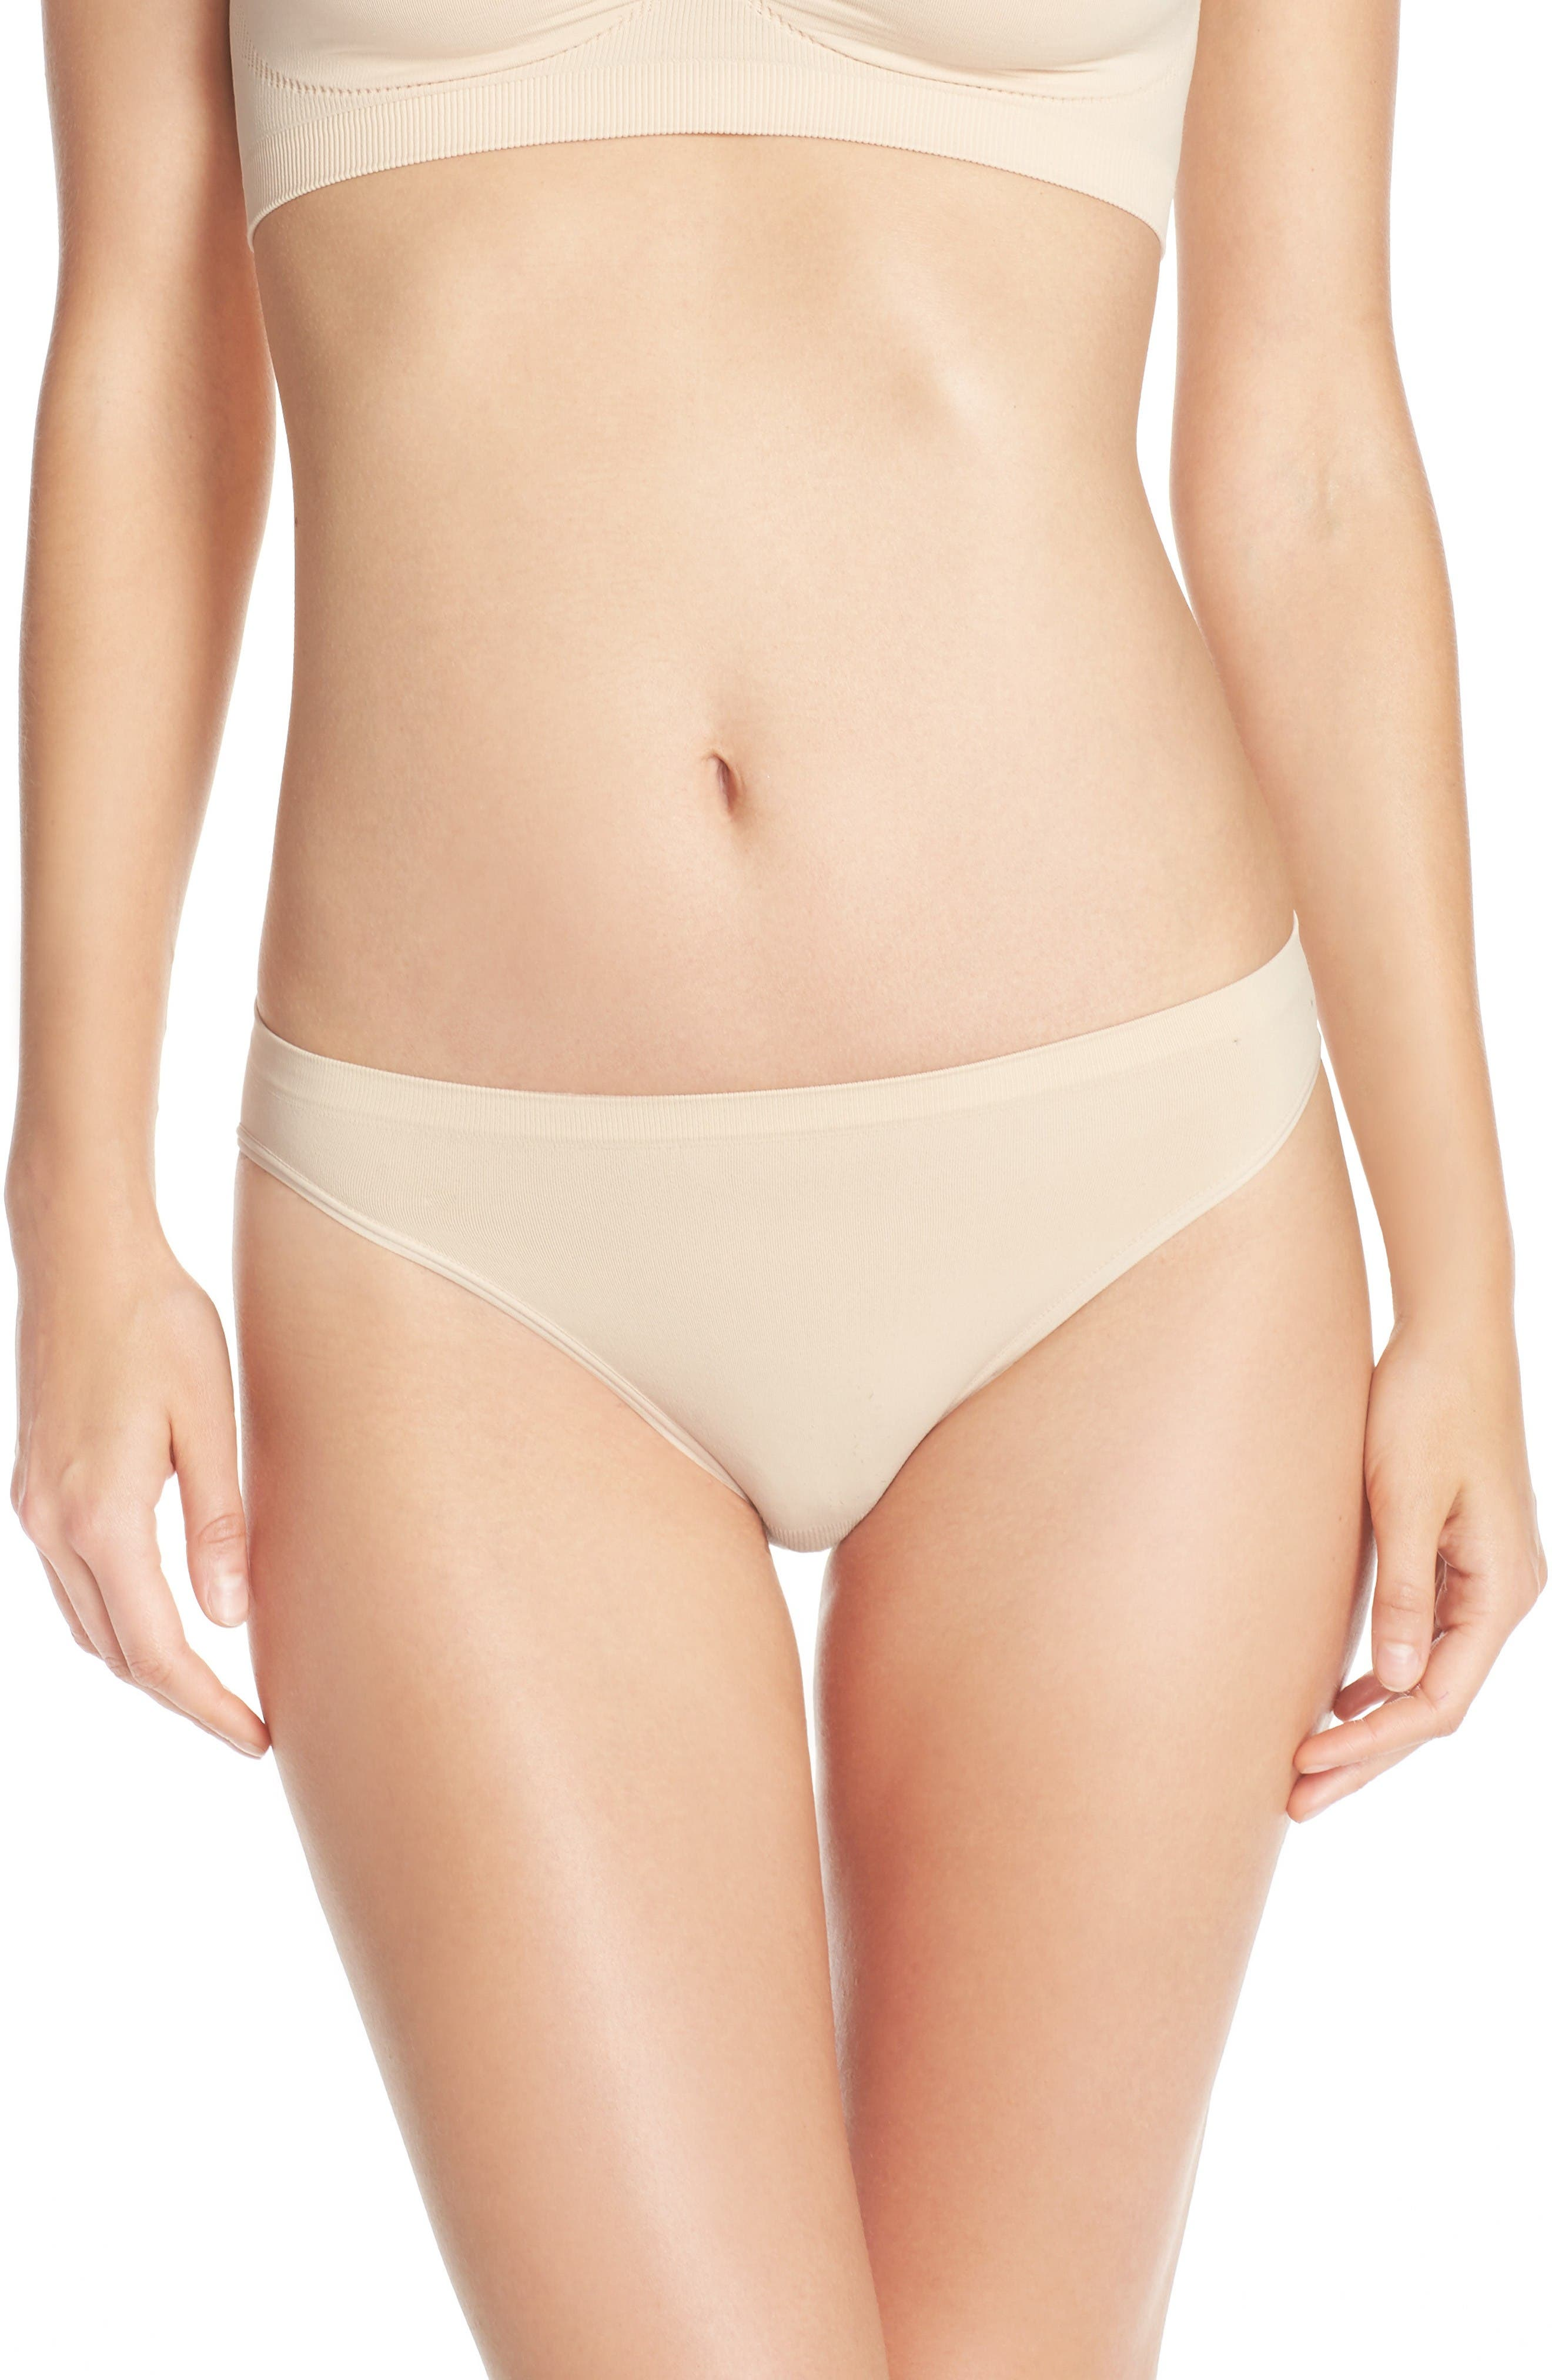 Nordstrom Lingerie Seamless High Cut Briefs (4 for $34)